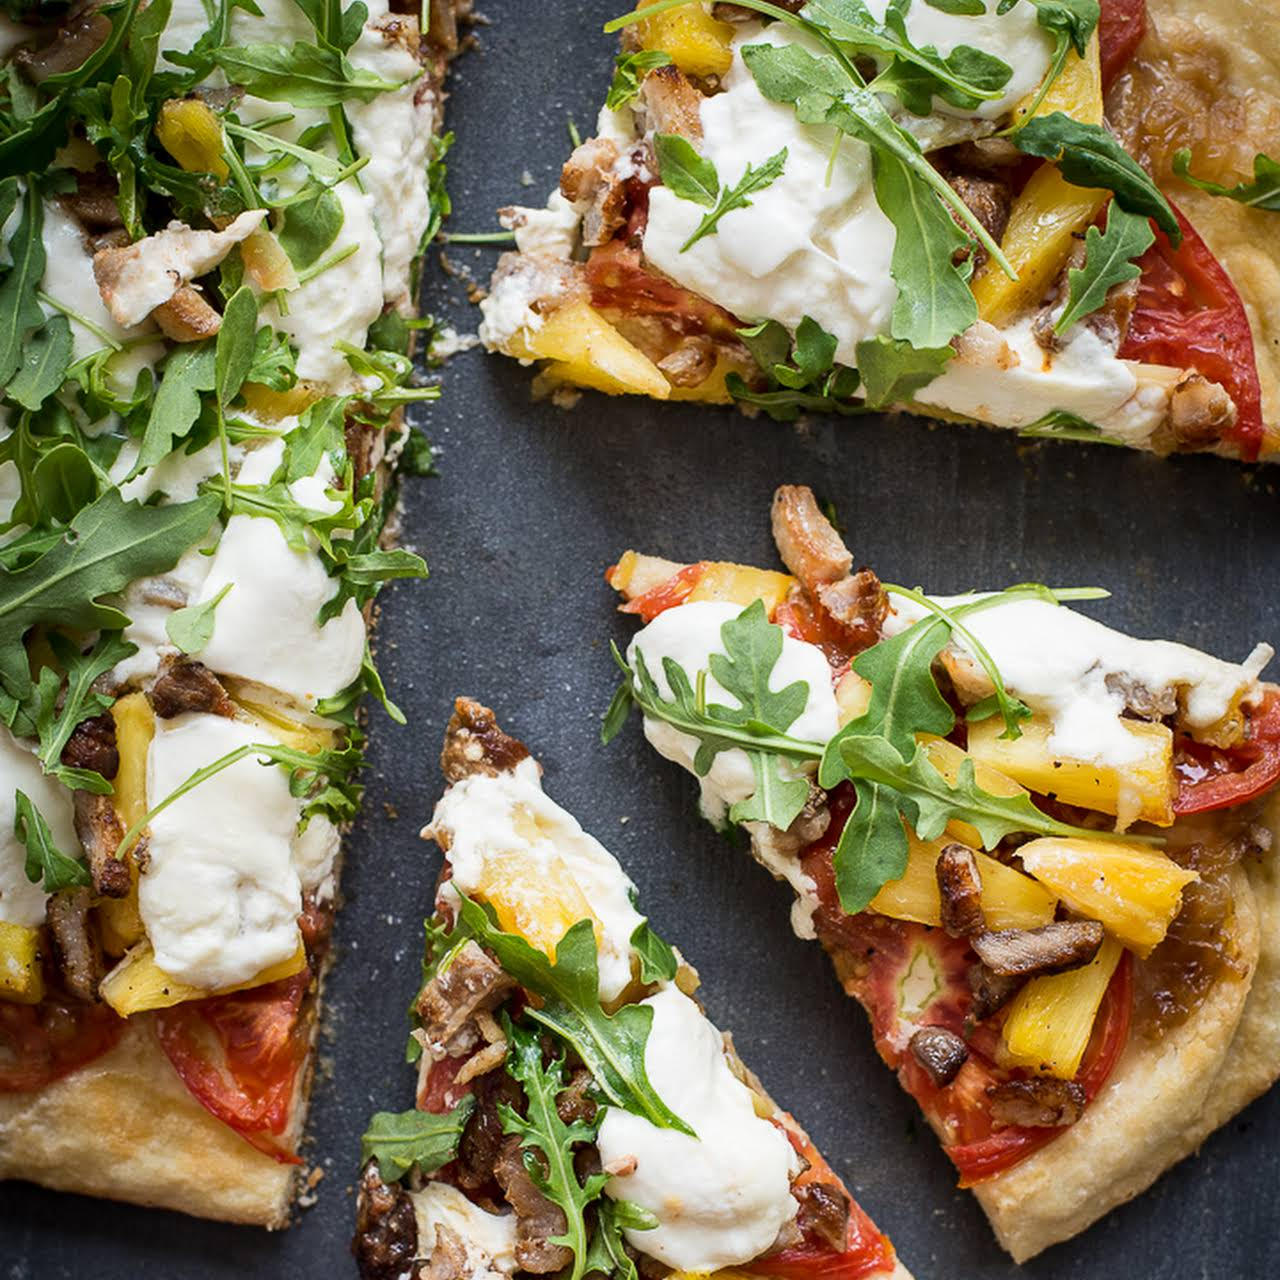 Grilled Pineapple, Crispy Pork Belly, Burrata and Arugula Pizza.